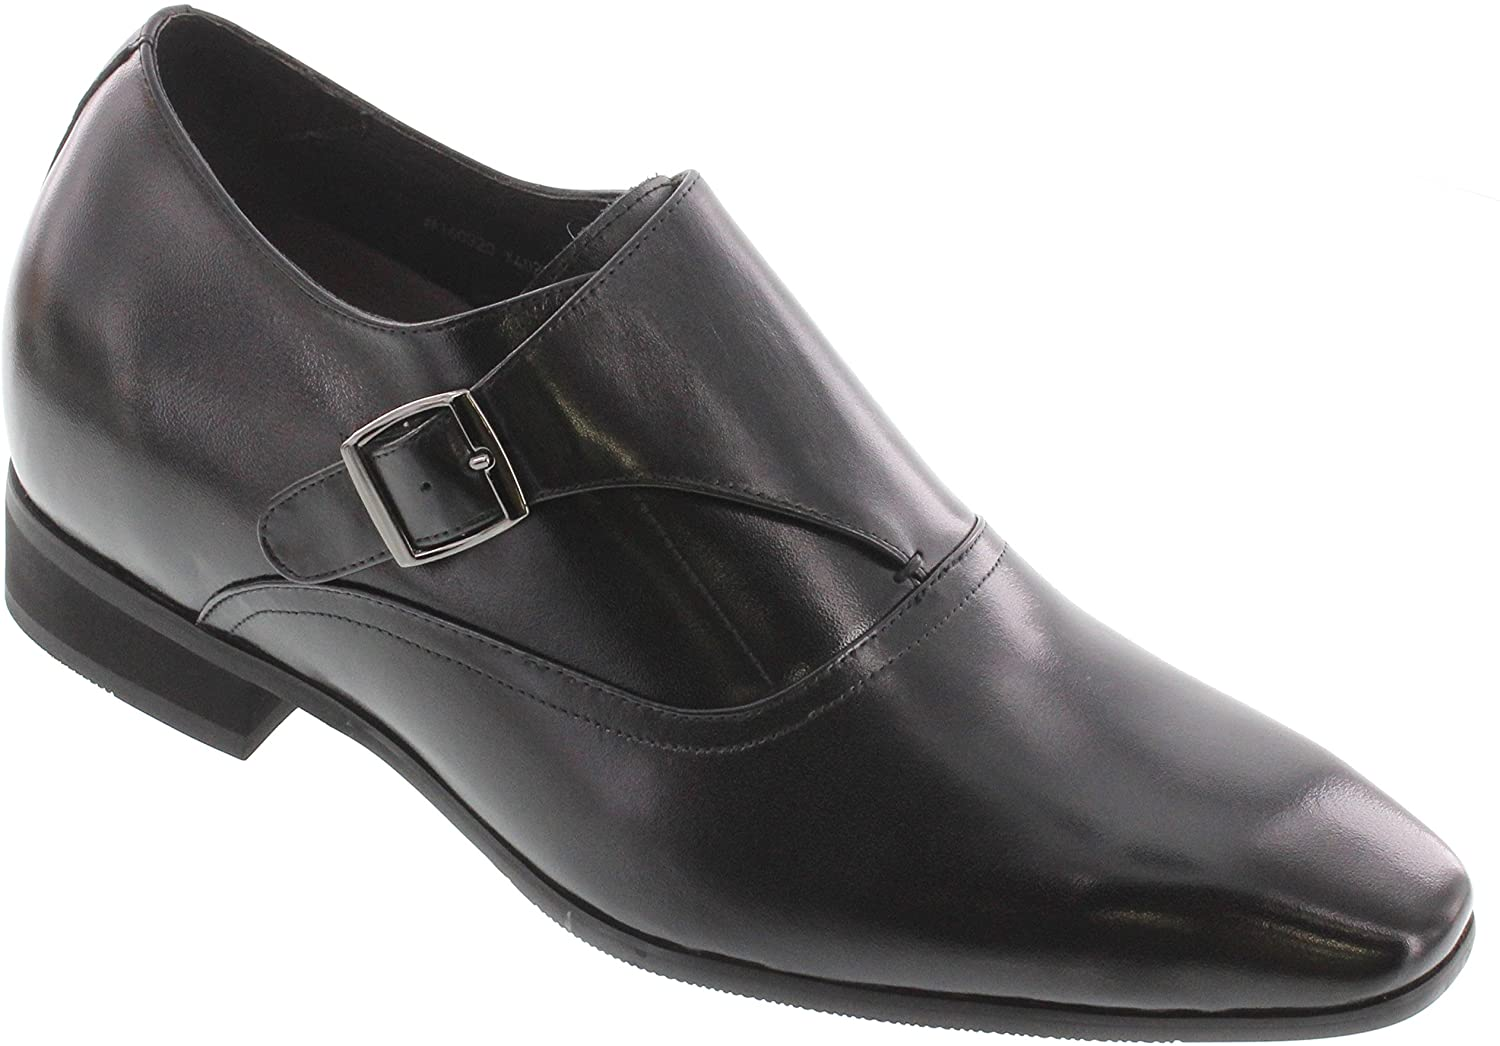 TOTO Men's Invisible Height Increasing Elevator Shoes - Black Leather Slip-on Lightweight Formal Loafers - 2.8 Inches Taller - X4022